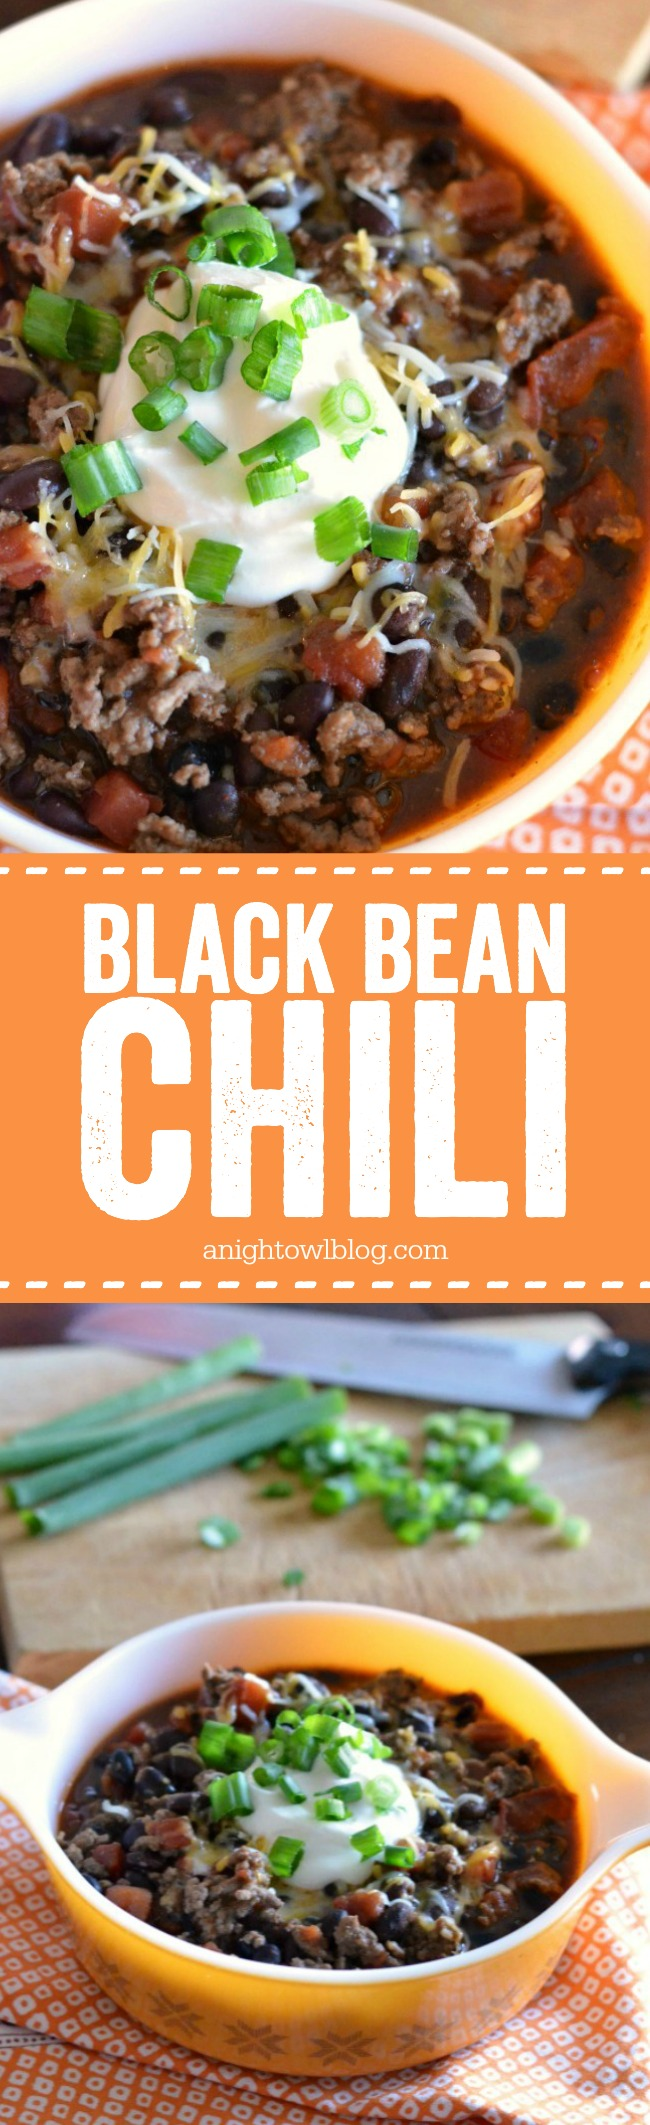 This Black Bean Chili is delicious and oh so easy! Great option for a quick weeknight meal!